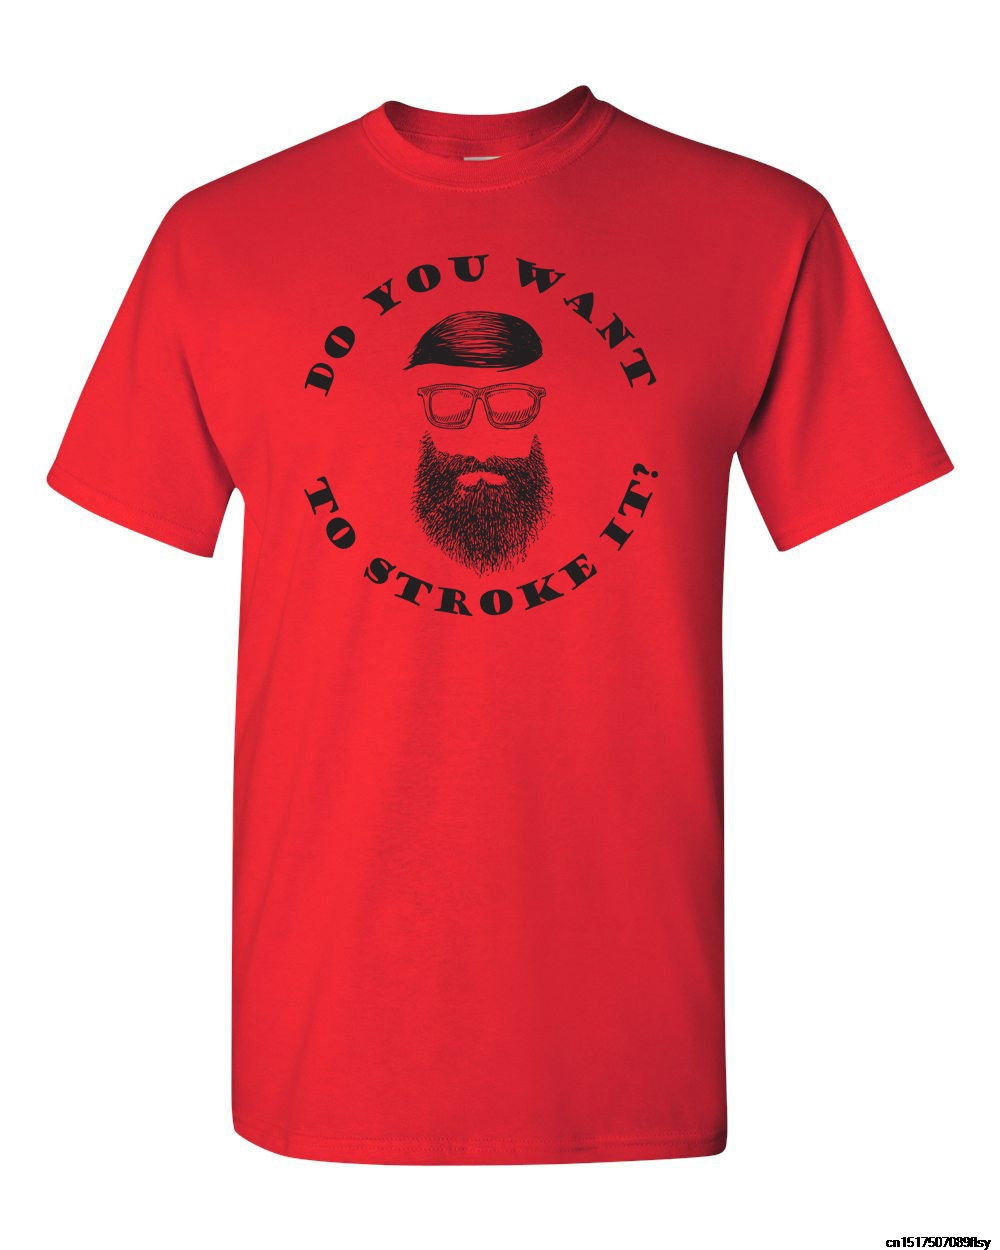 MenS Round Neck Blouse Short Sleeves Cotton T Shirt Do You Want To Stoke It? MenS Beard Mustache Funny MenS Tee Shirt 1371